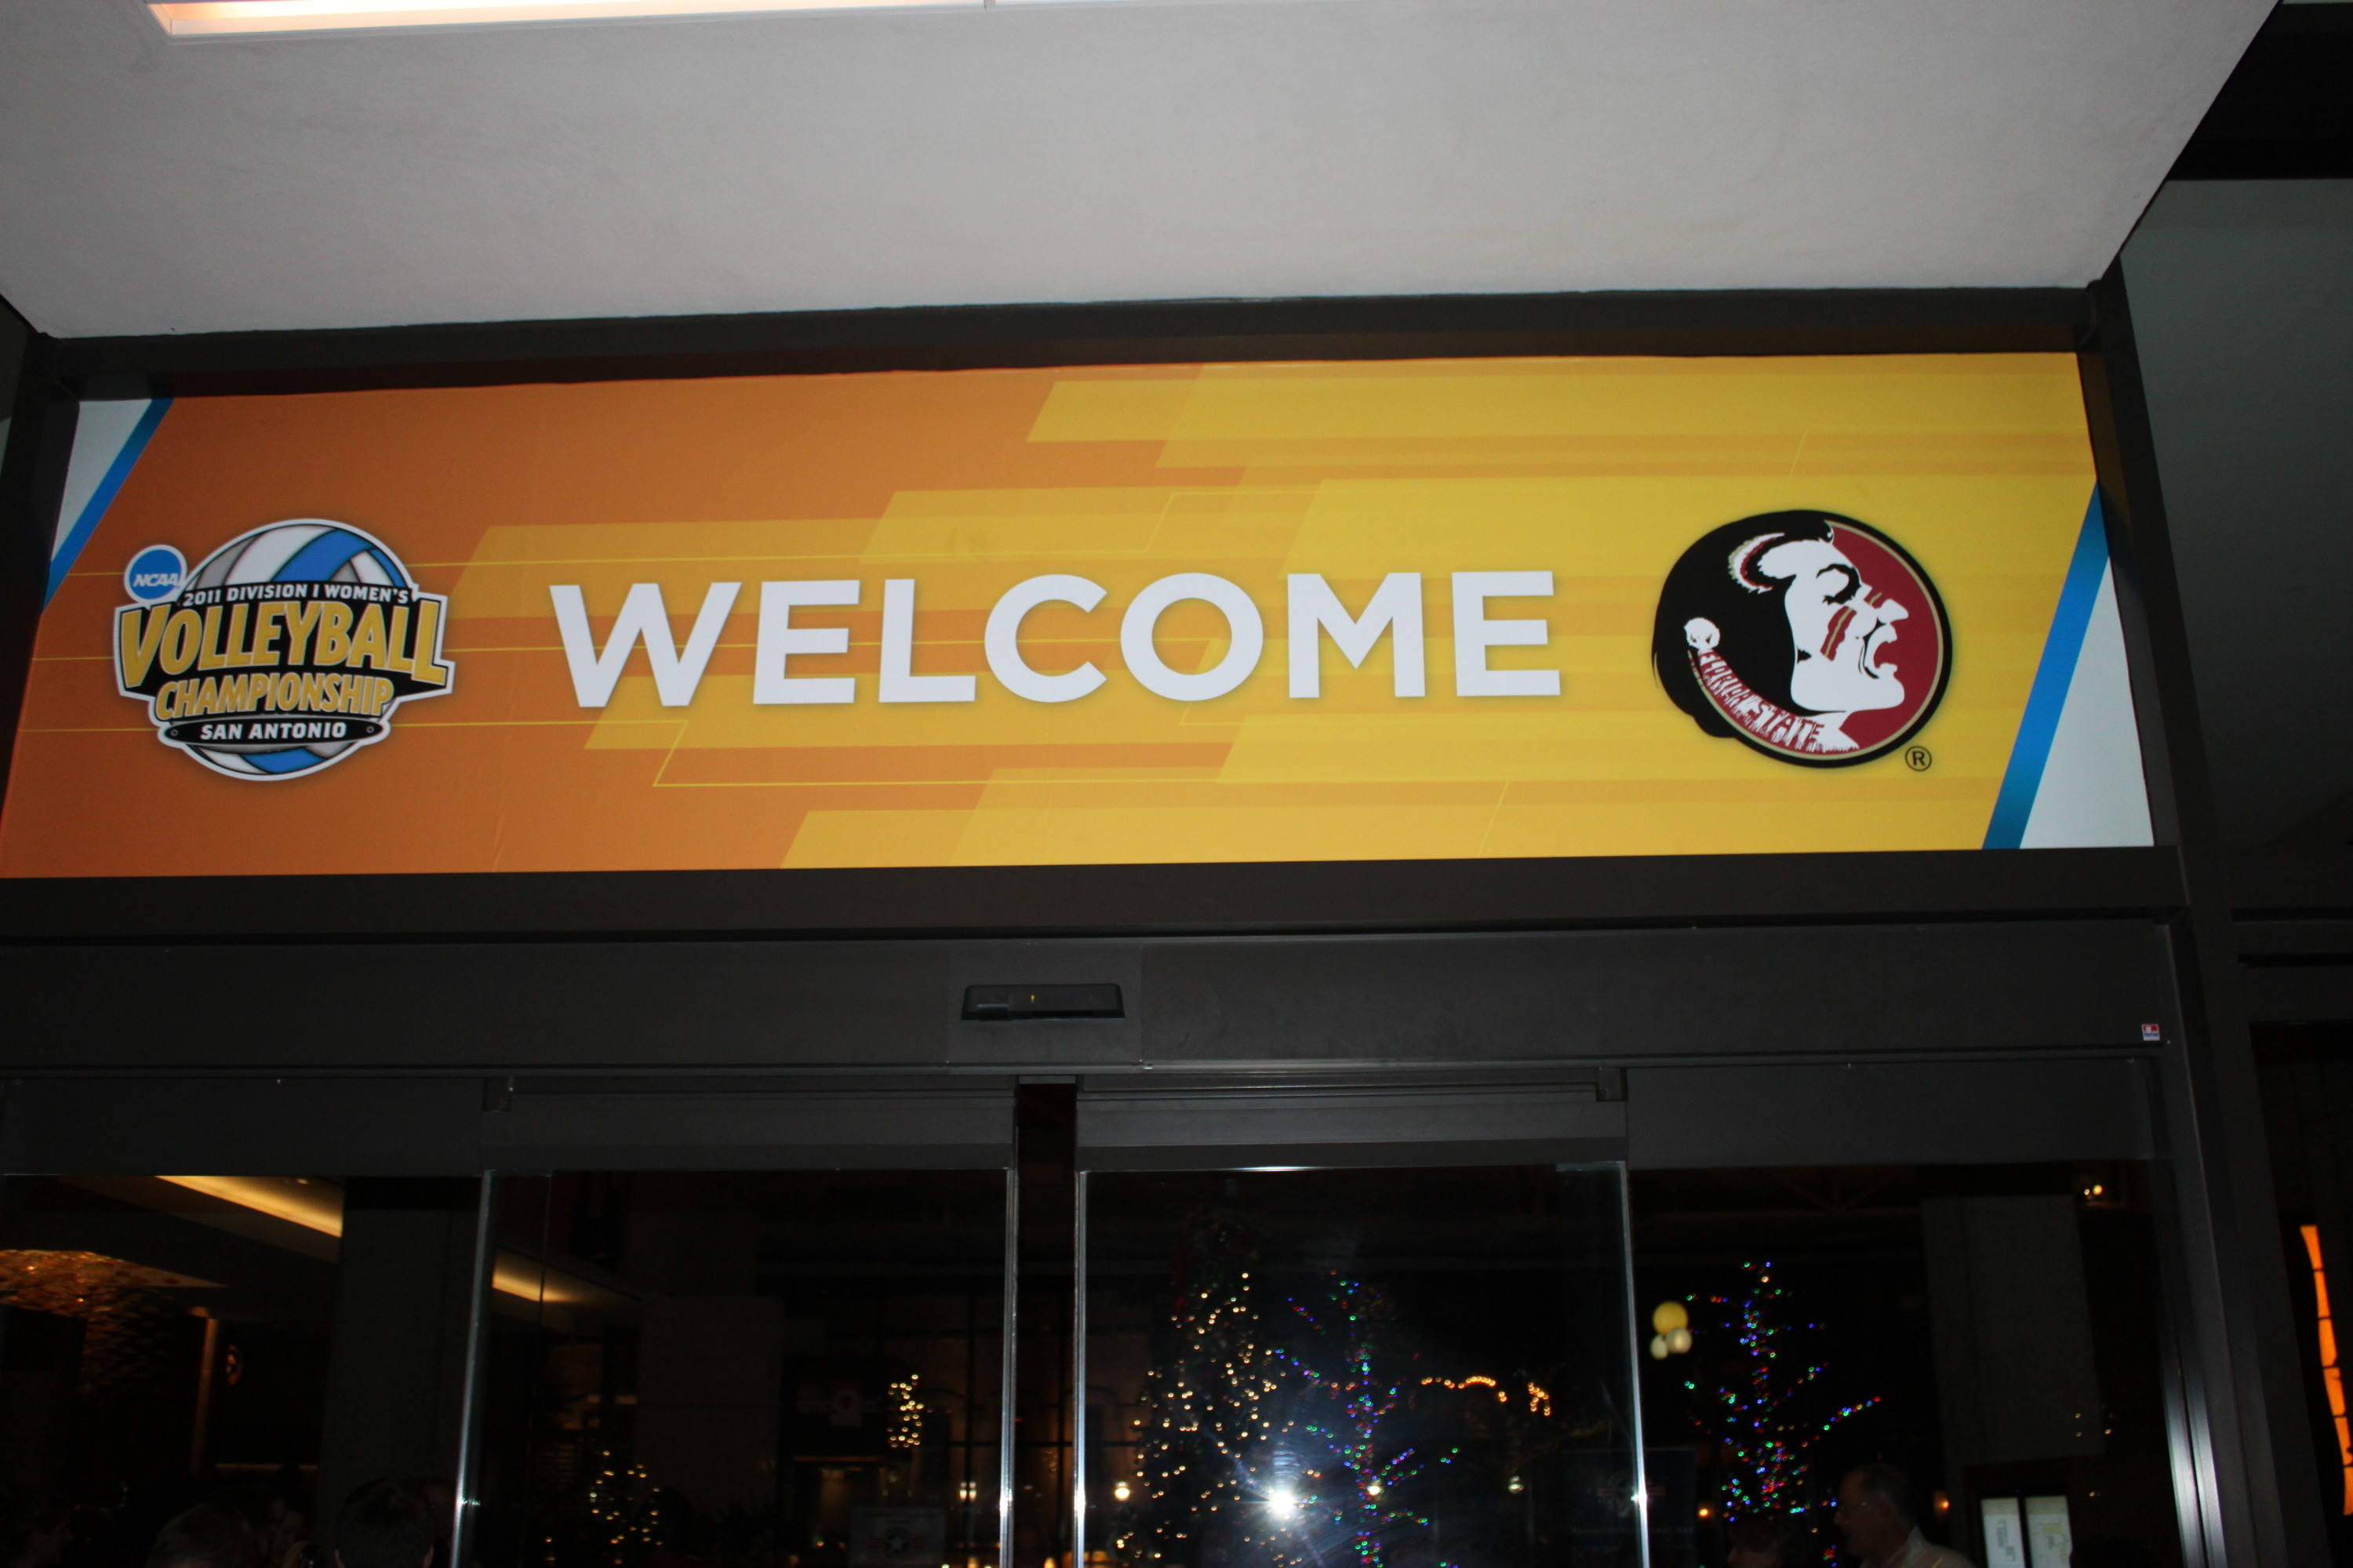 The Hyatt Regency welcomes the Seminoles with open arms